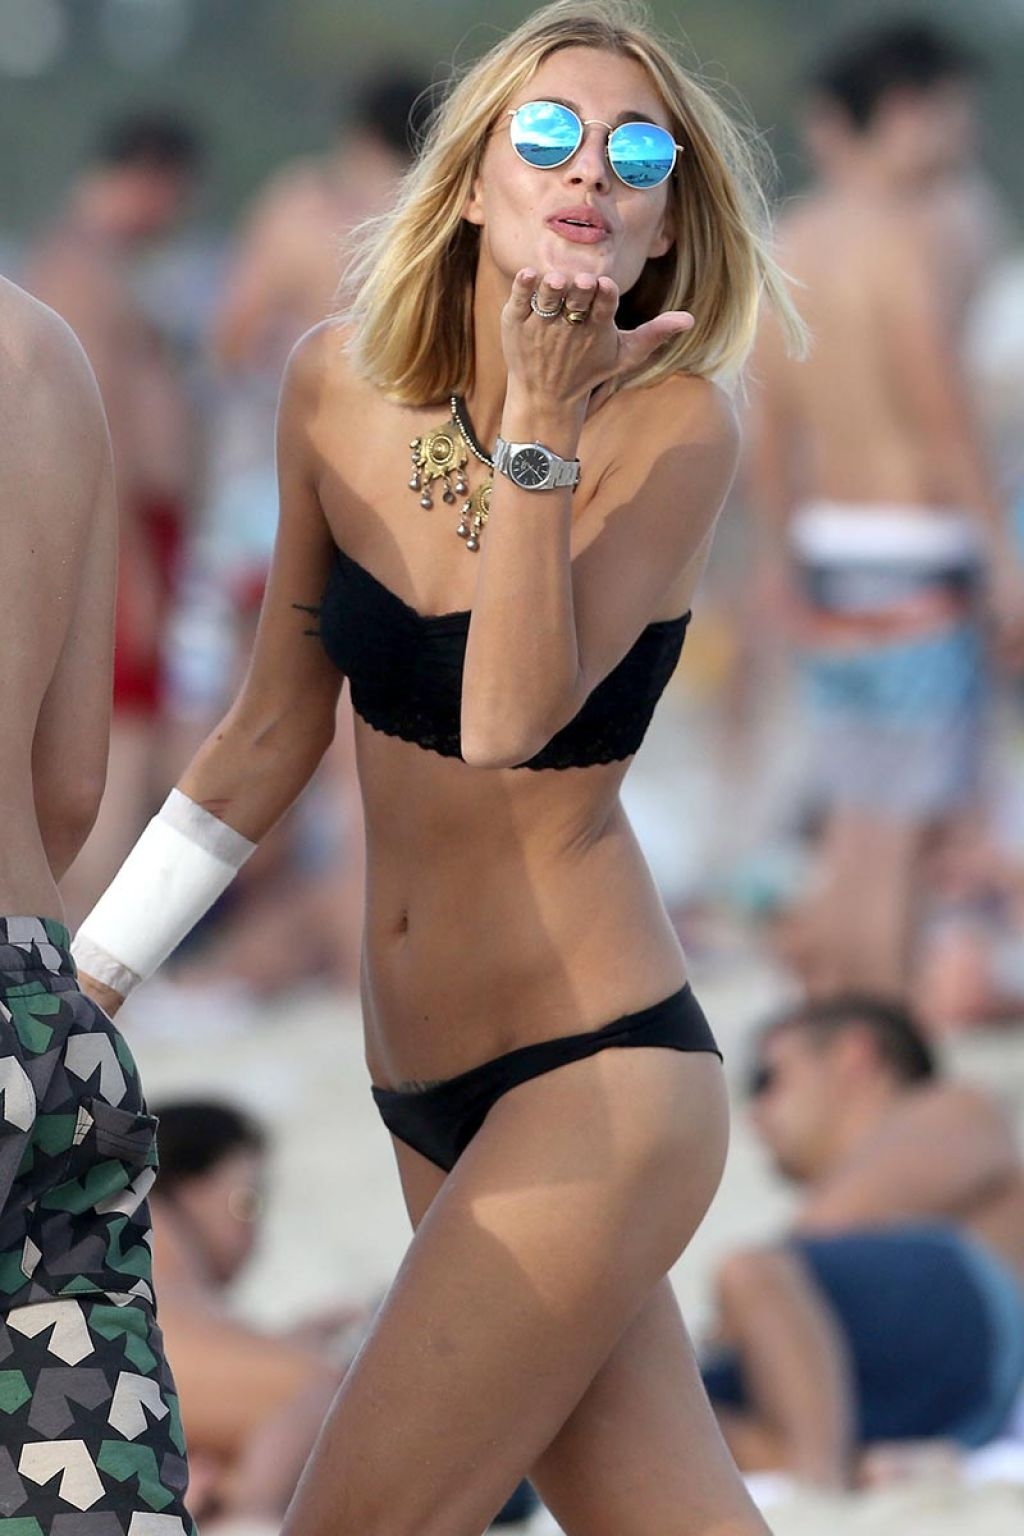 Sveva Alviti in Black Bikini On The Beach In Miami - December 2014